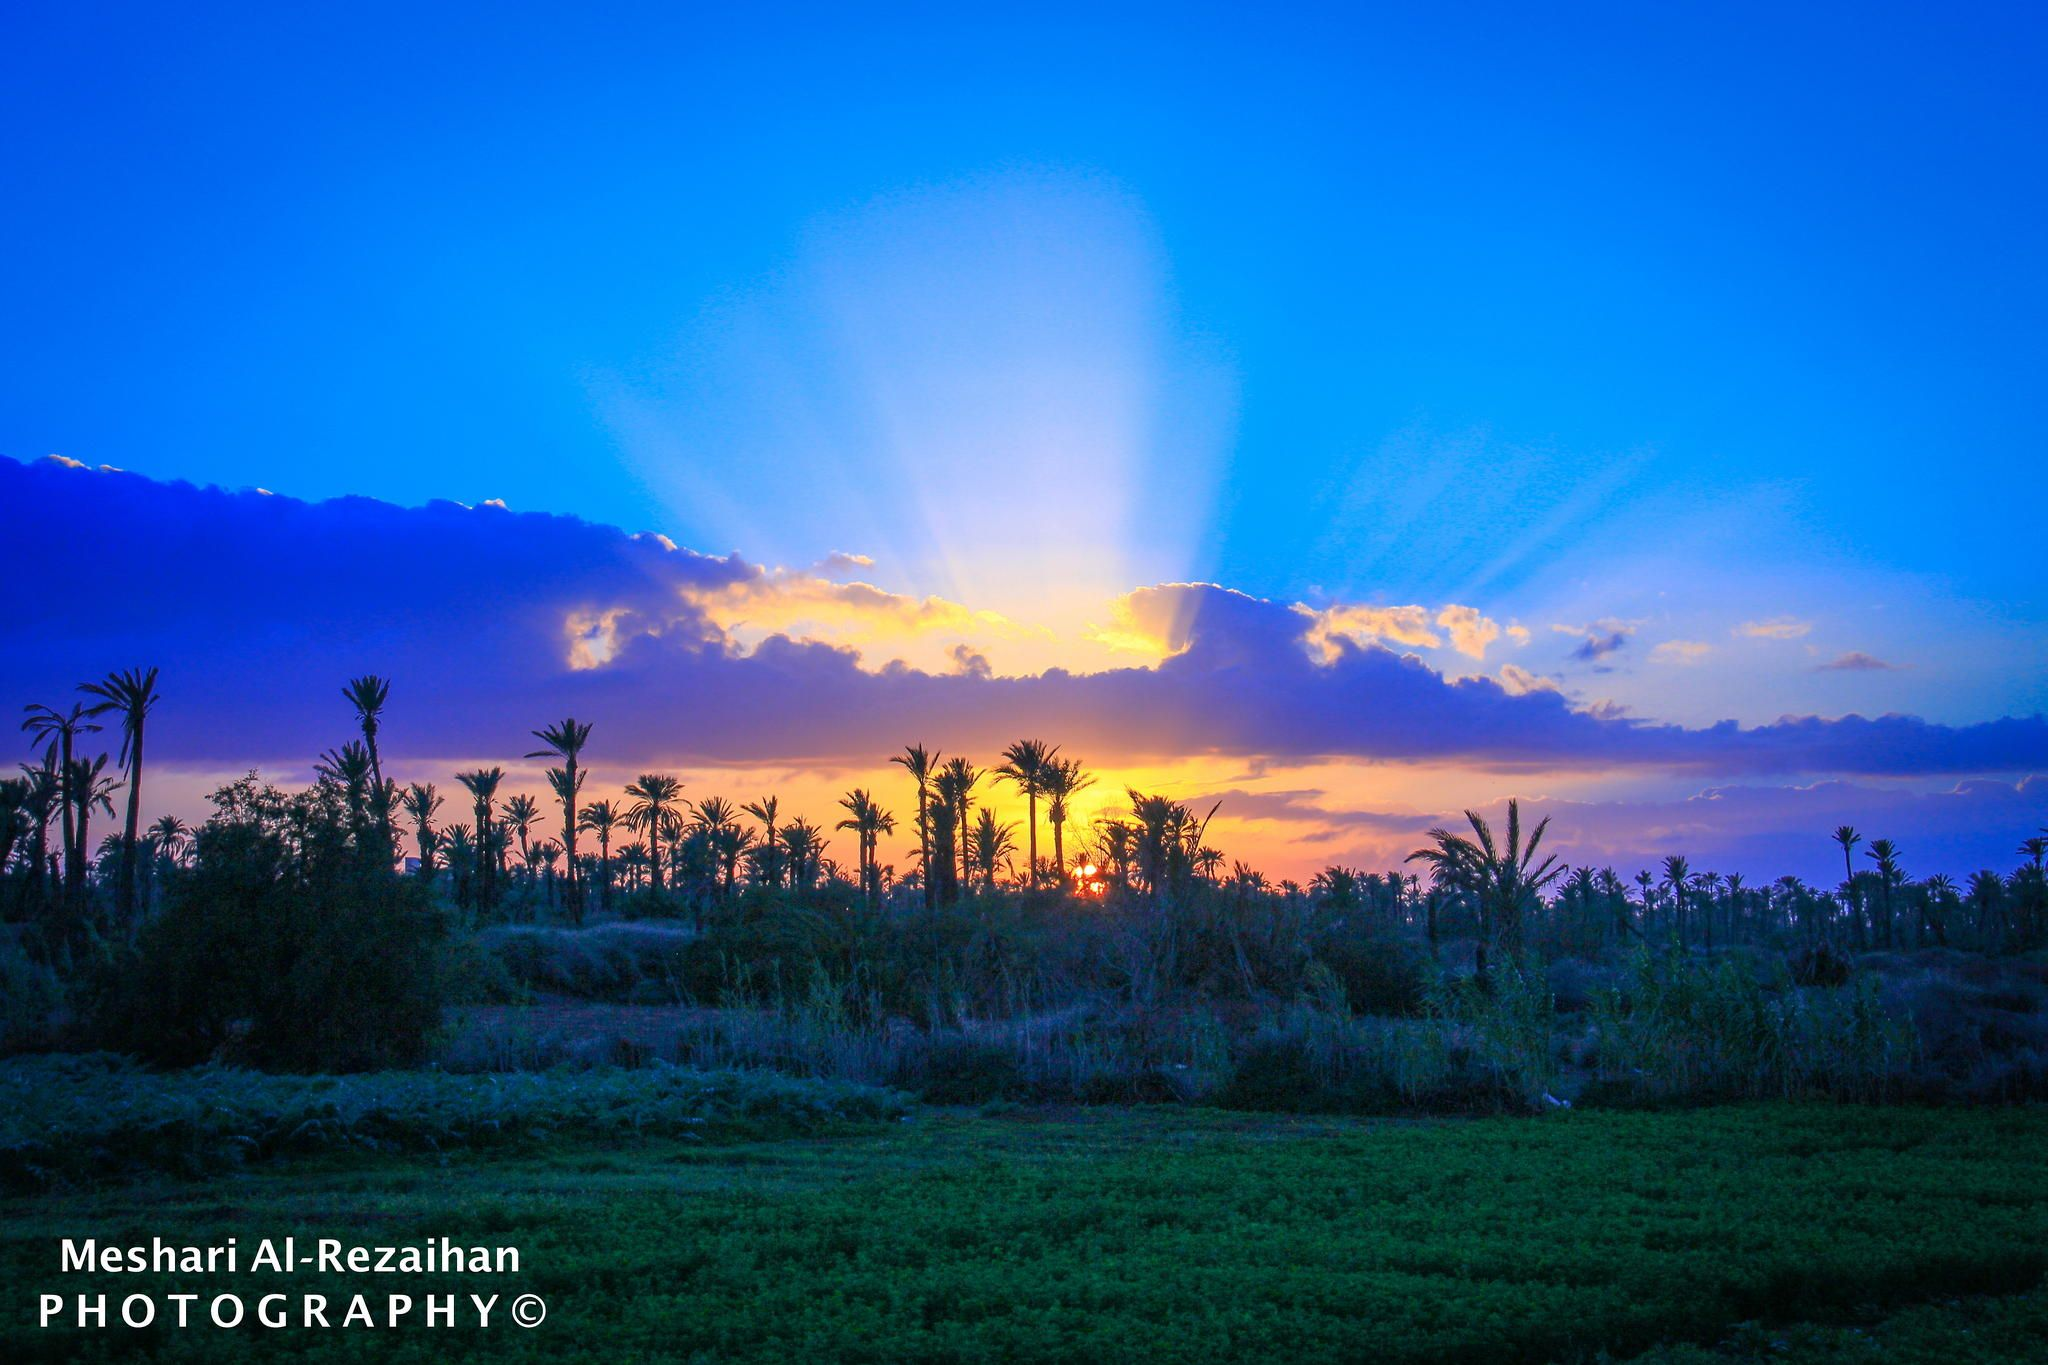 The Palm City by Meshari Al-Rezaihan on 500px